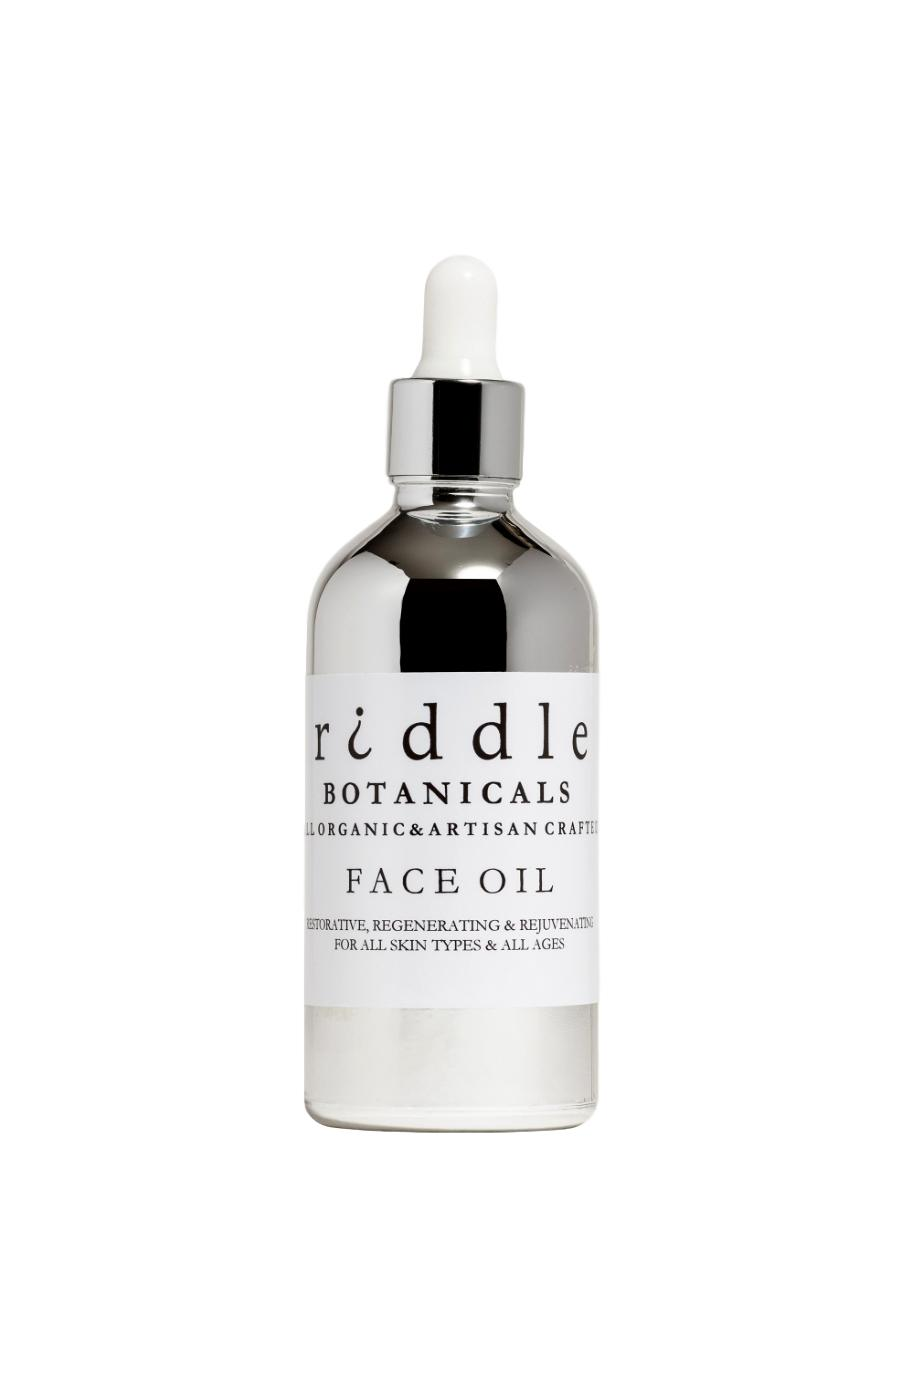 Riddle Face Oil